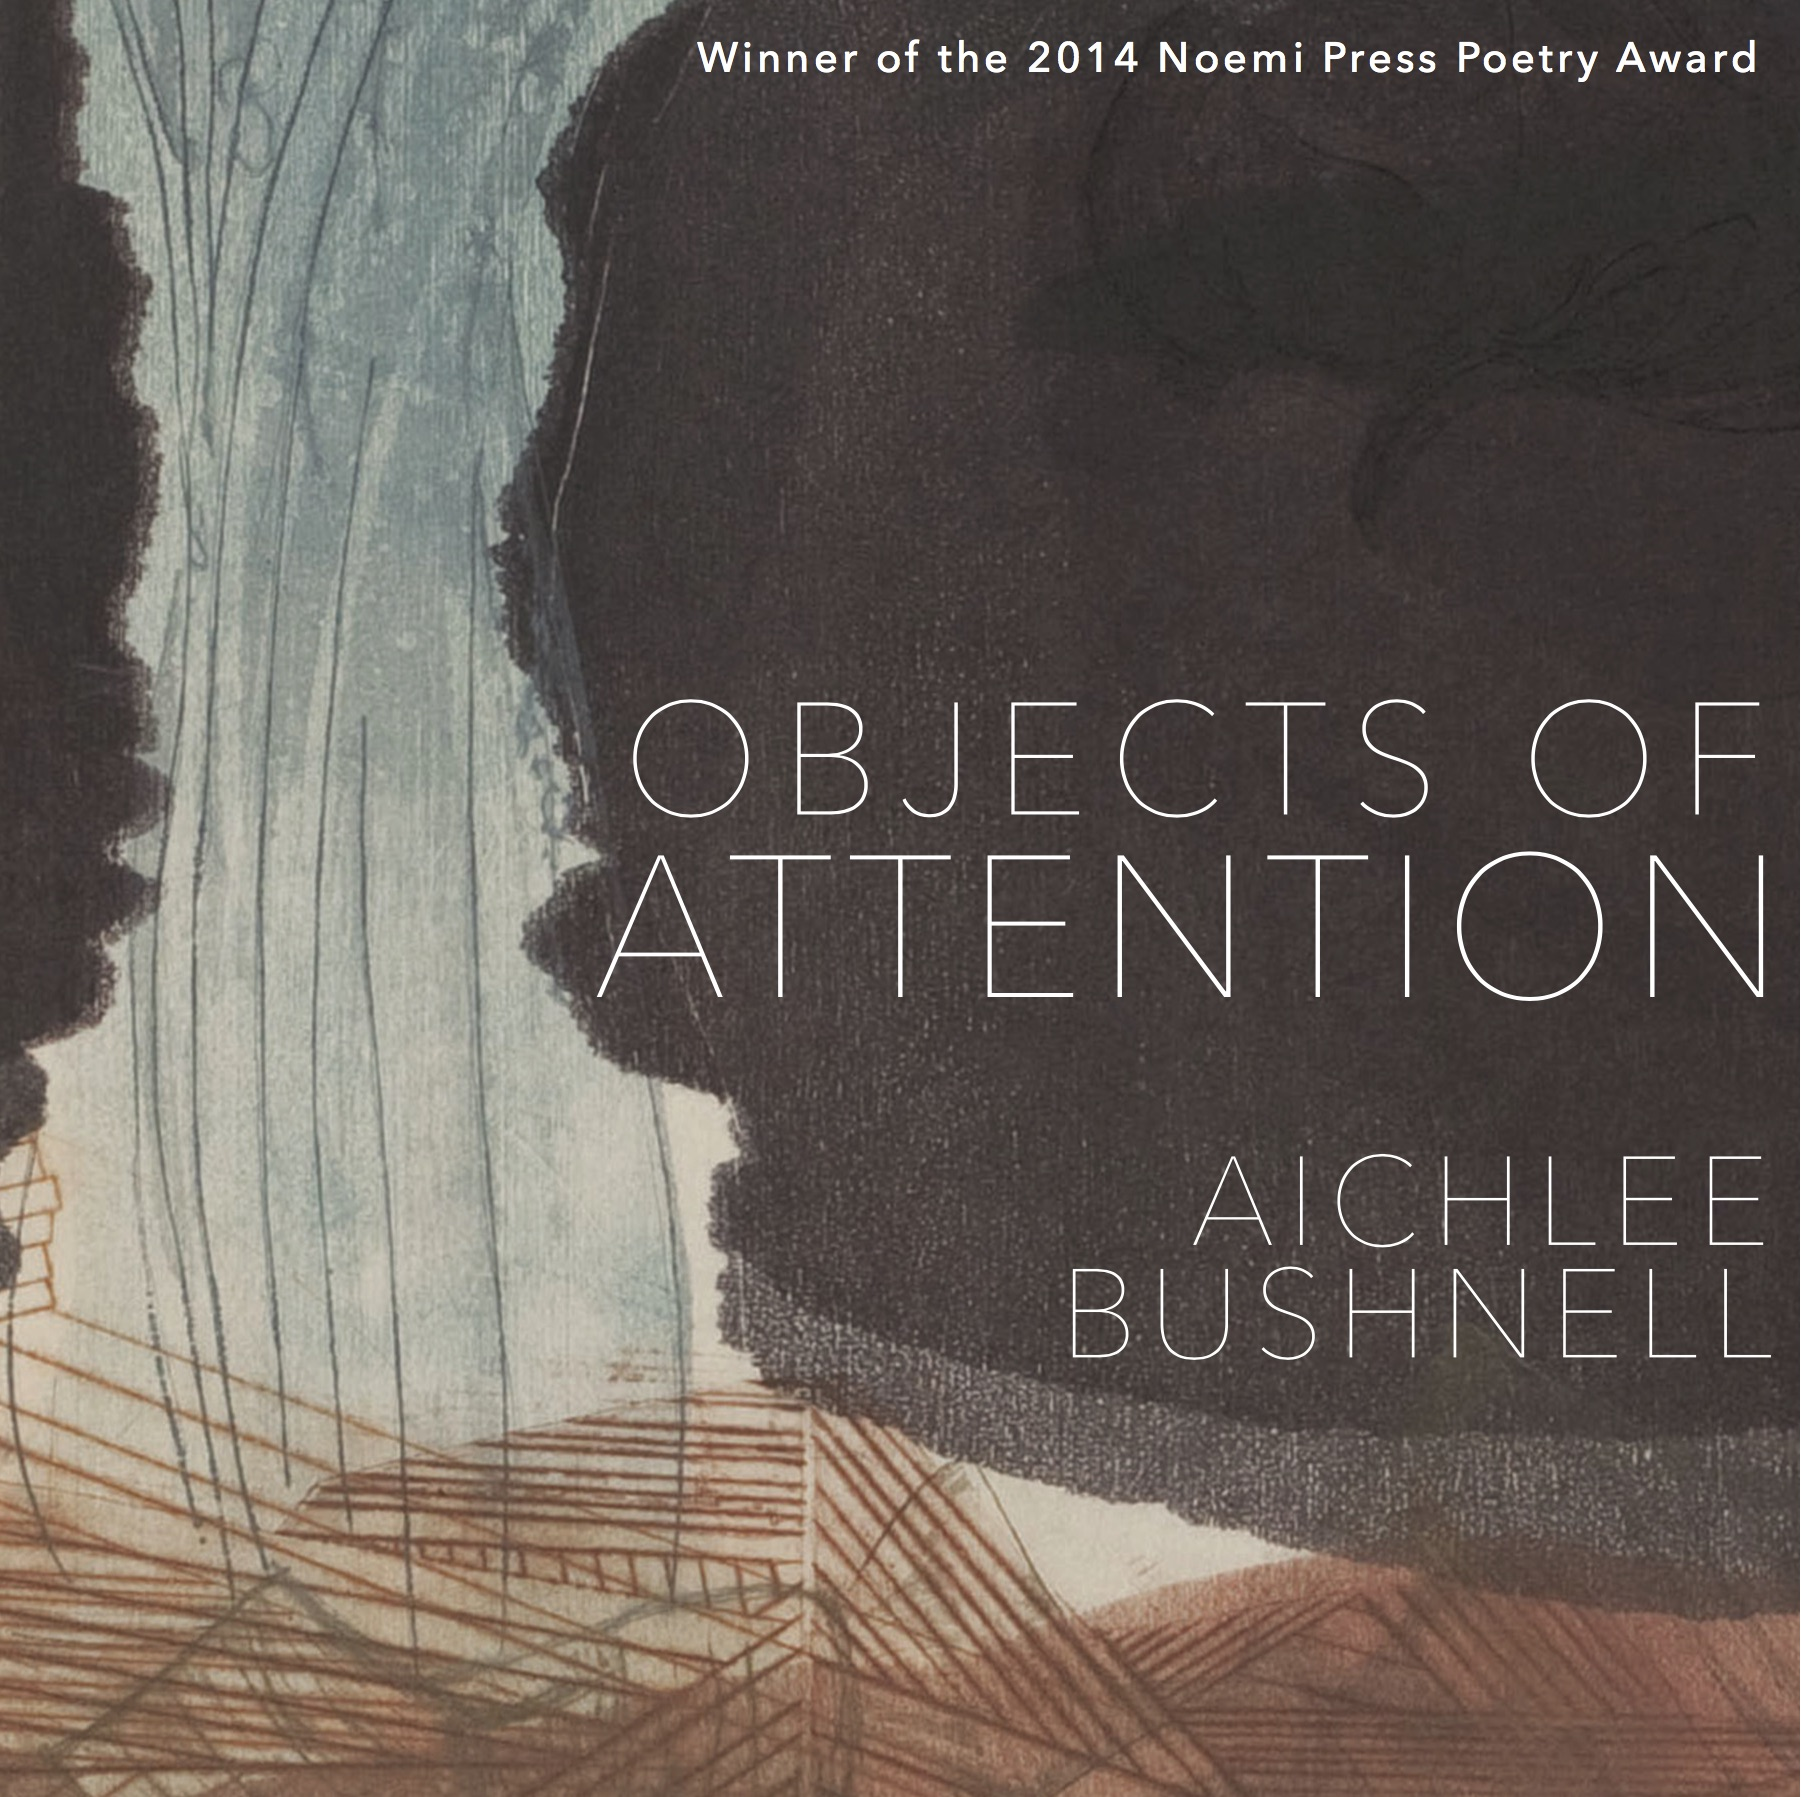 Objects of Attention by Aichlee Bushnell